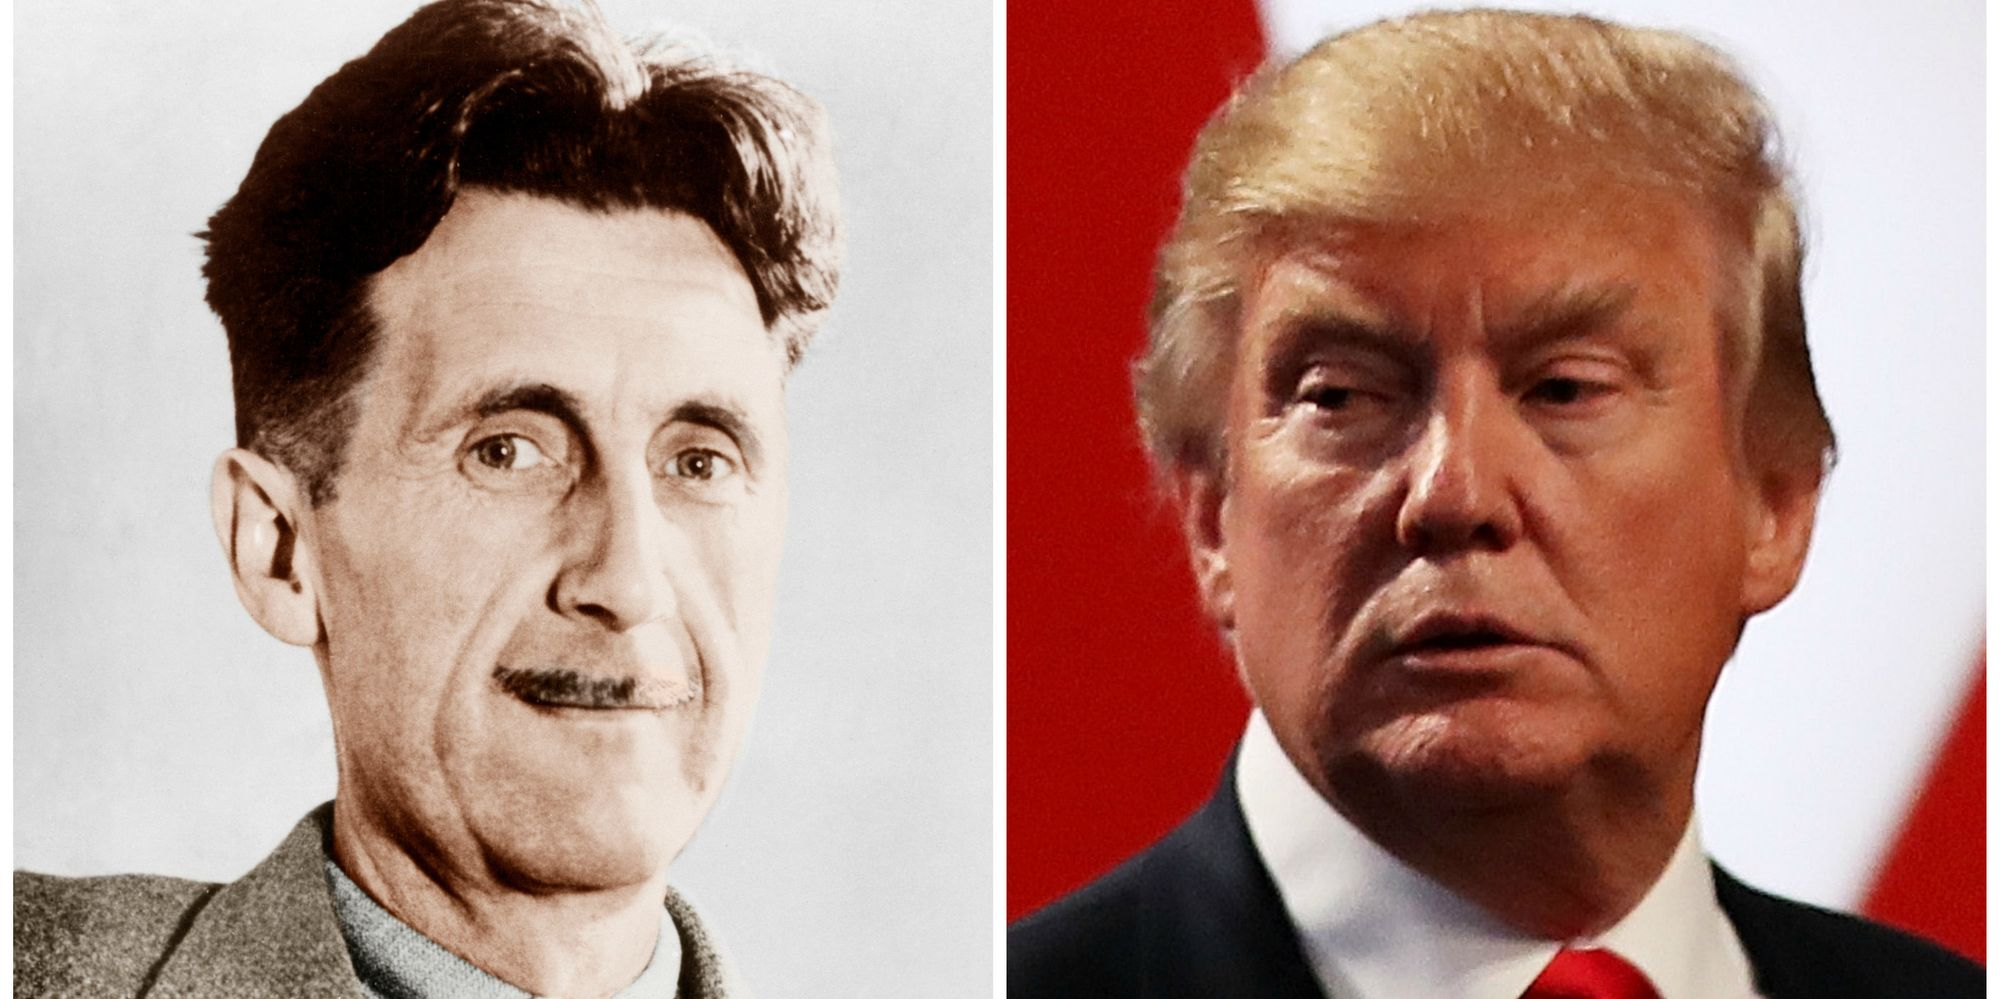 the orwell essay that s even more pertinent than 1984 right now the orwell essay that s even more pertinent than 1984 right now the huffington post